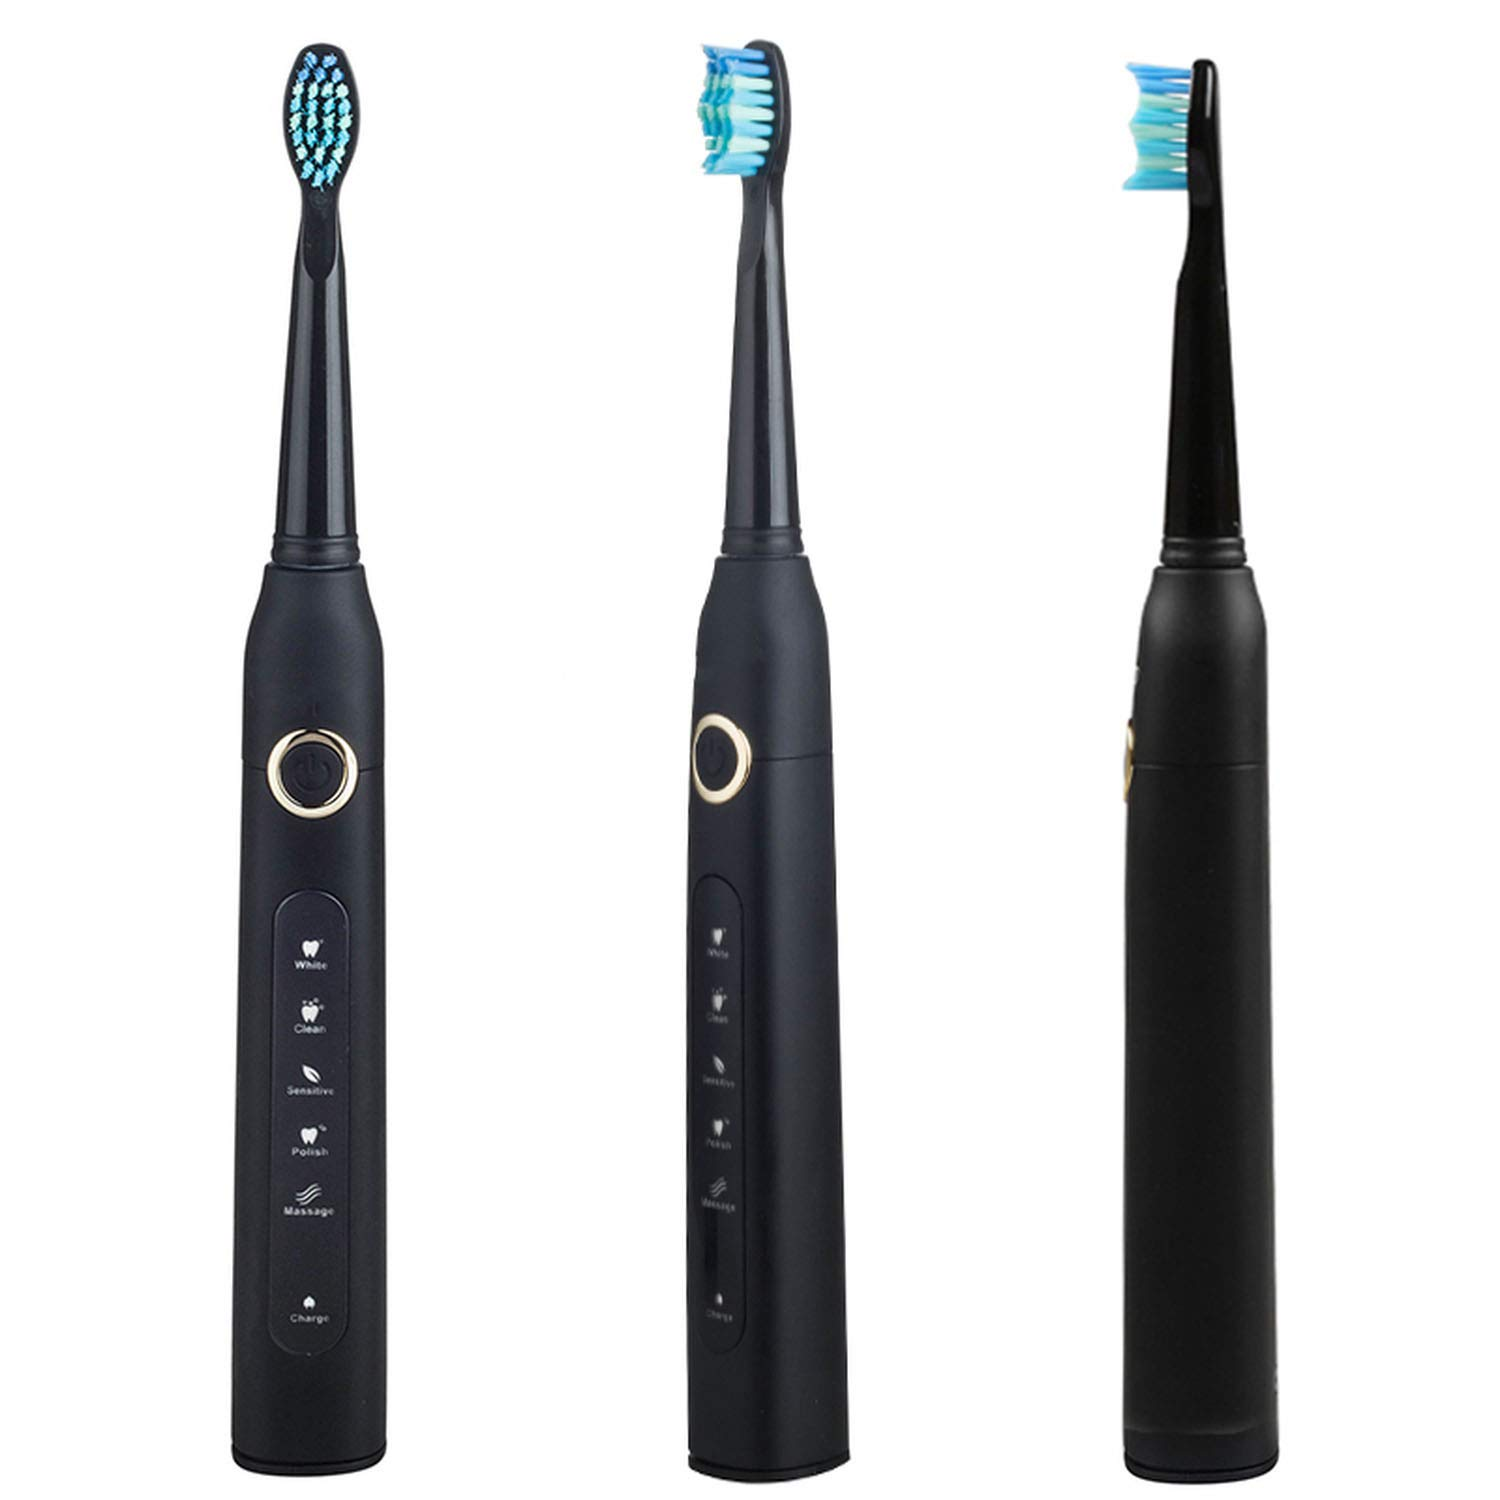 Amazon.com: Sonic Electric Toothbrush USB Charge Rechargeable Tooth Brushes Value Spree Mysterious Birthday Gift Surprise Christmas Day,Black: Beauty